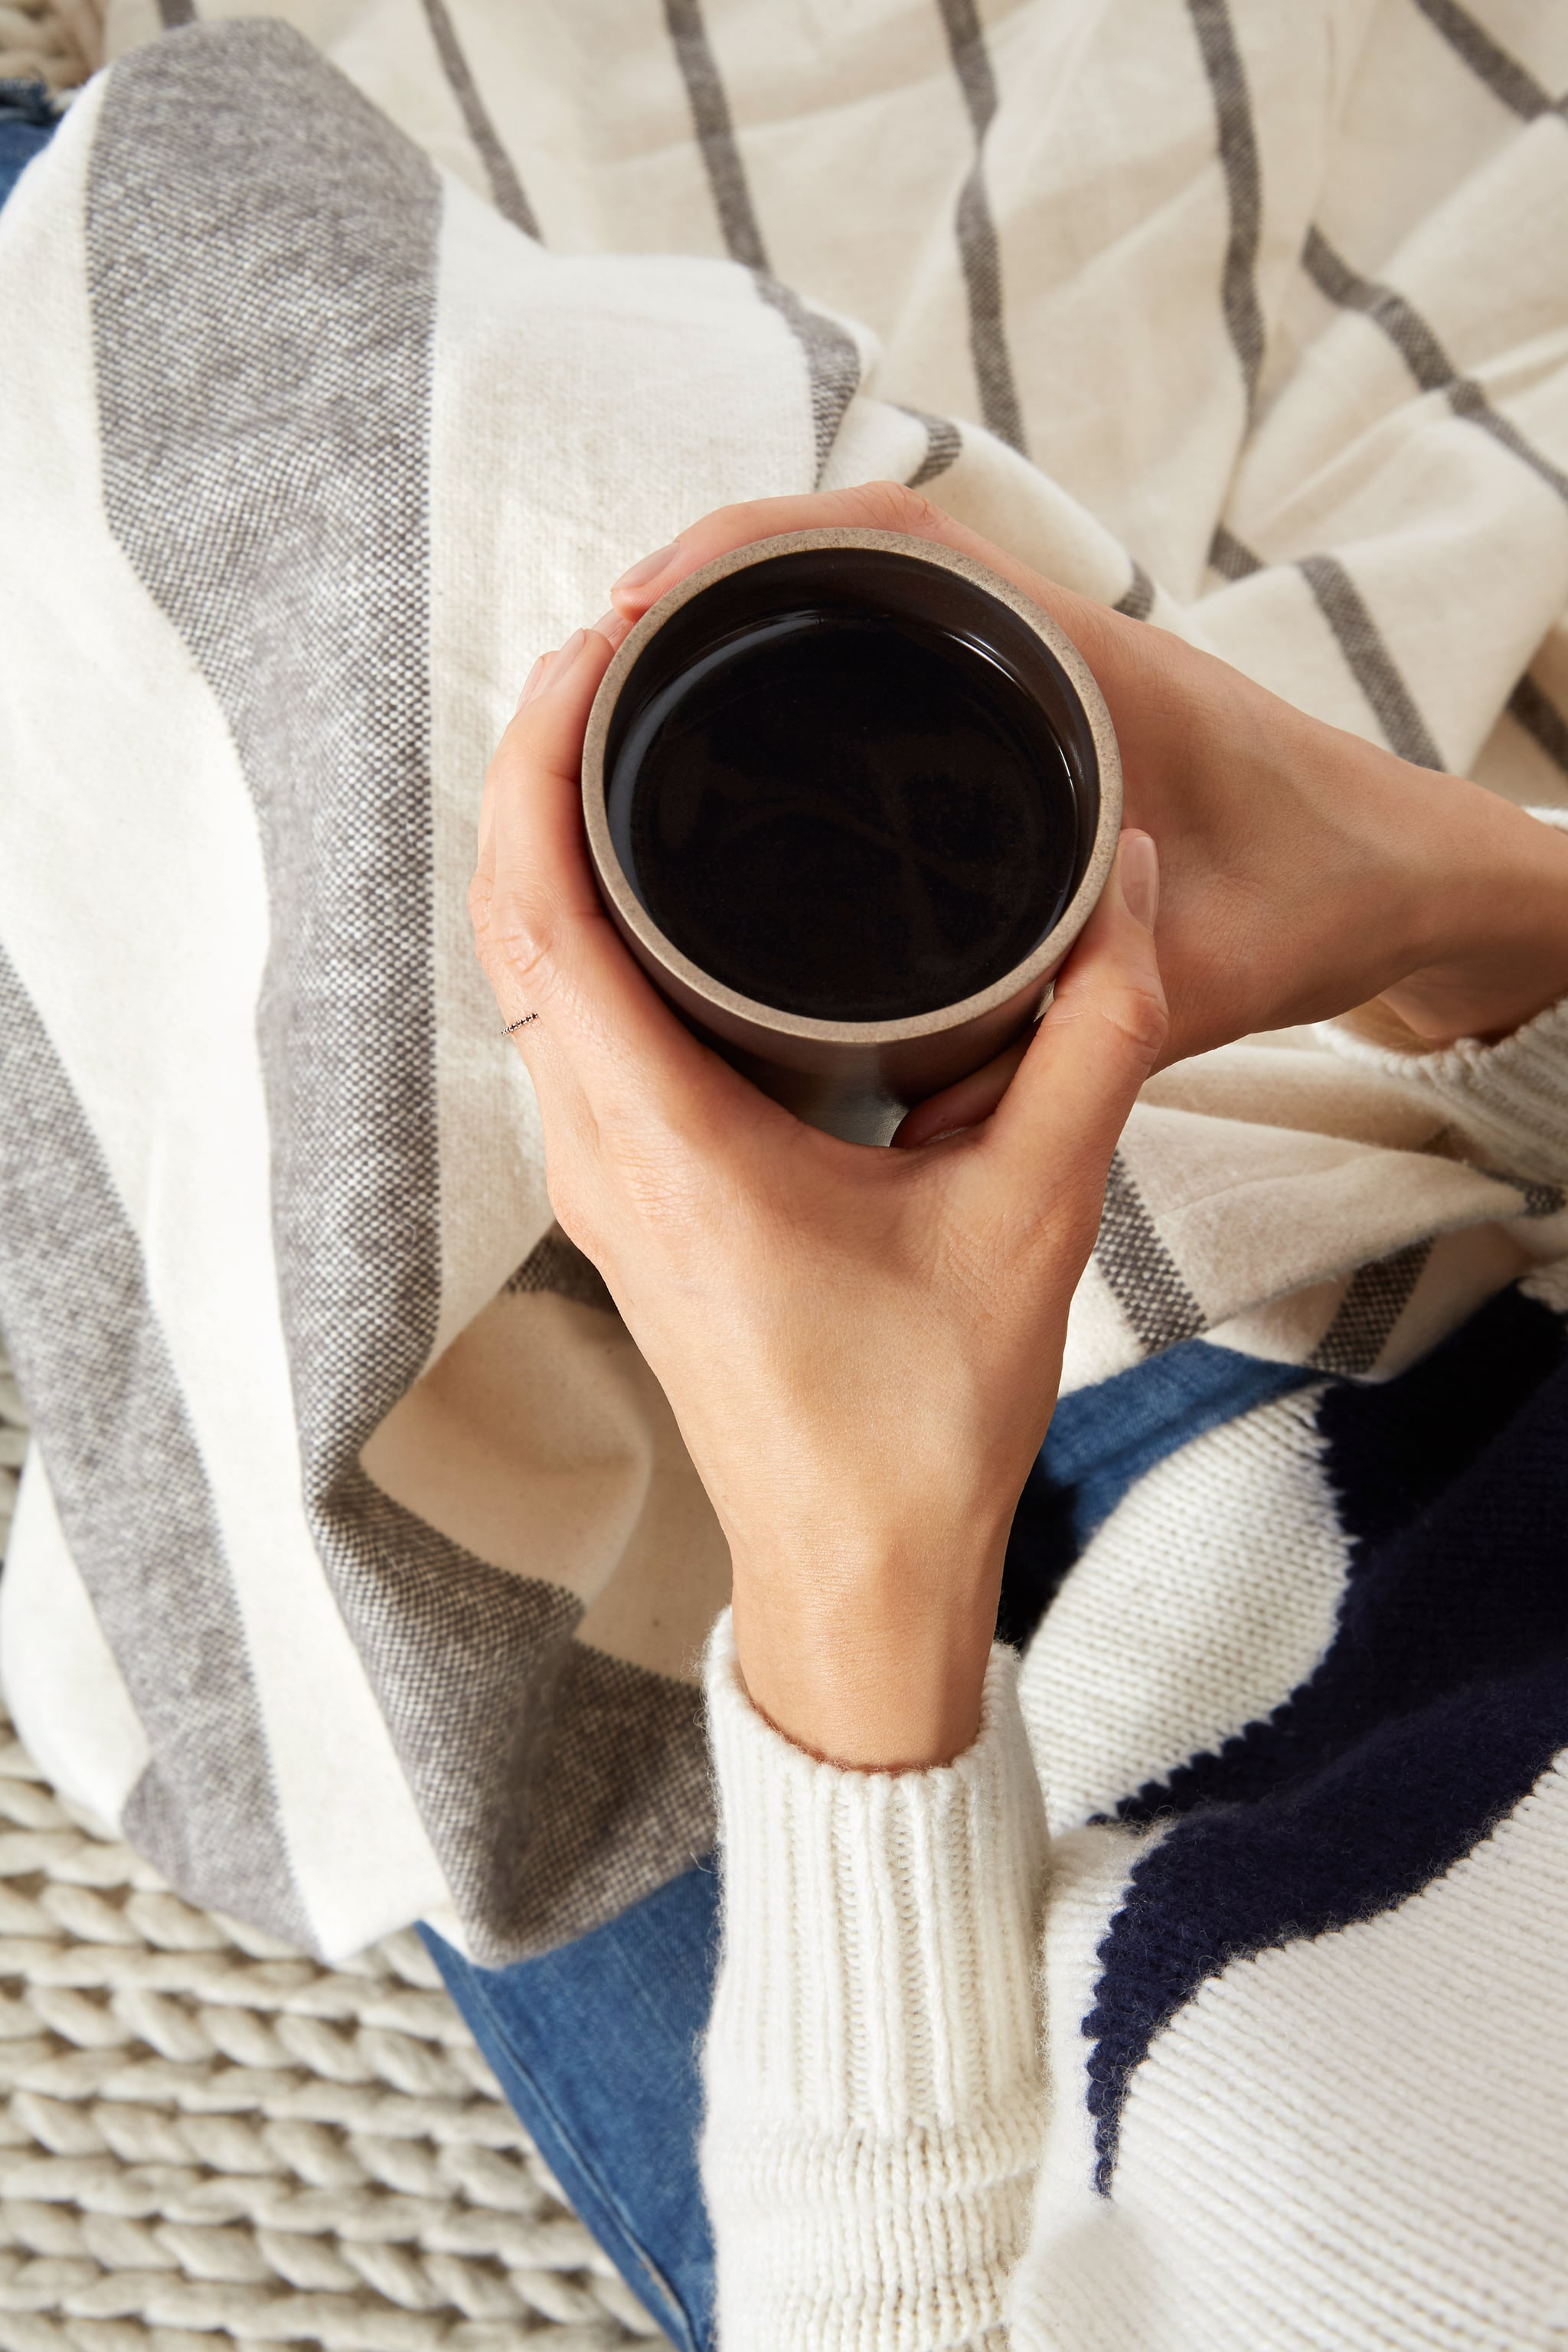 The Negative Role Coffee Plays in Weight Loss, According to an Expert